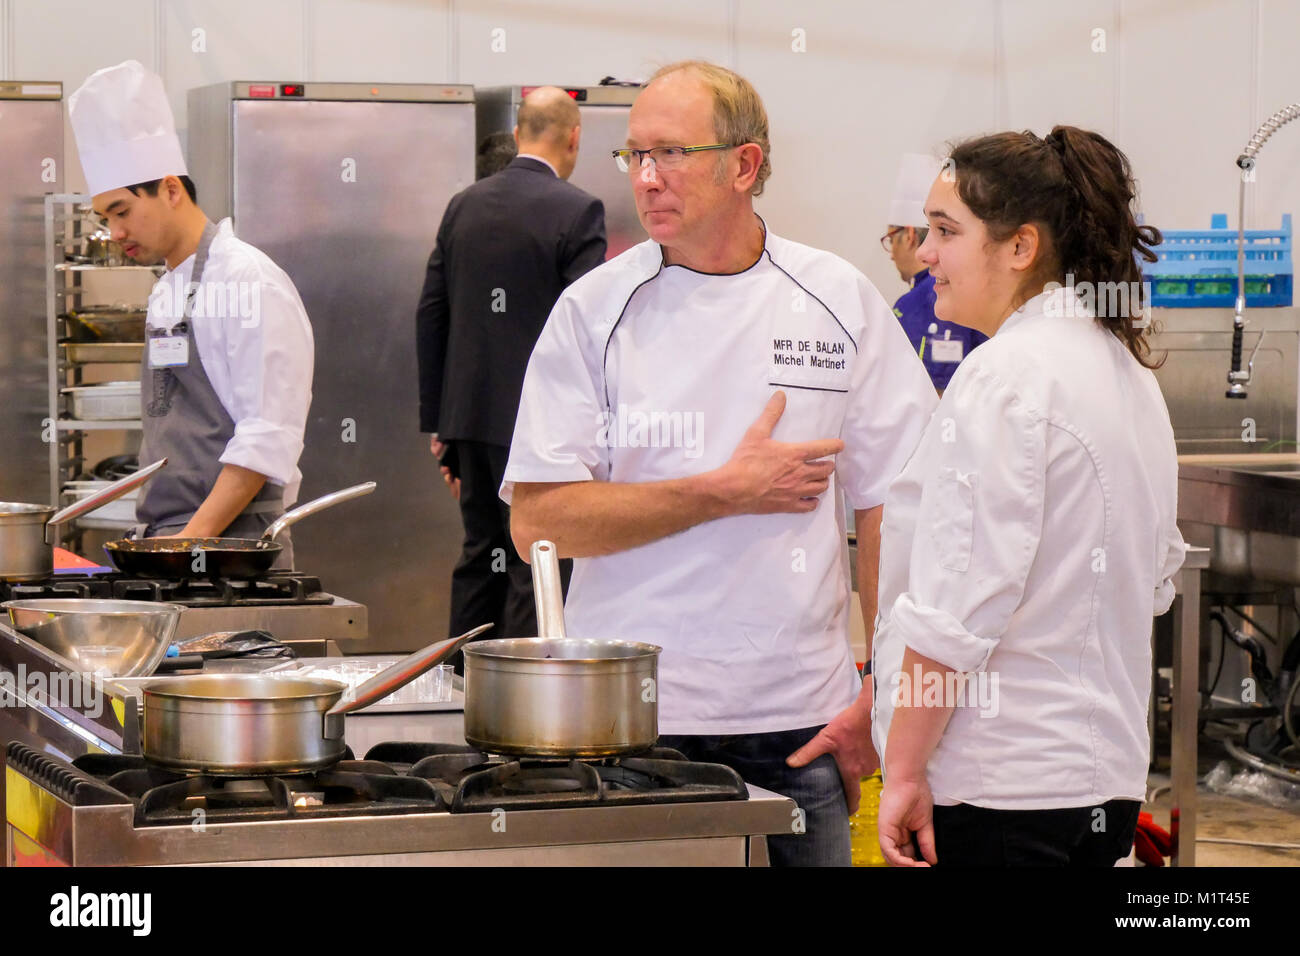 Young apprentices cookers at Job fair, Lyon, France - Stock Image